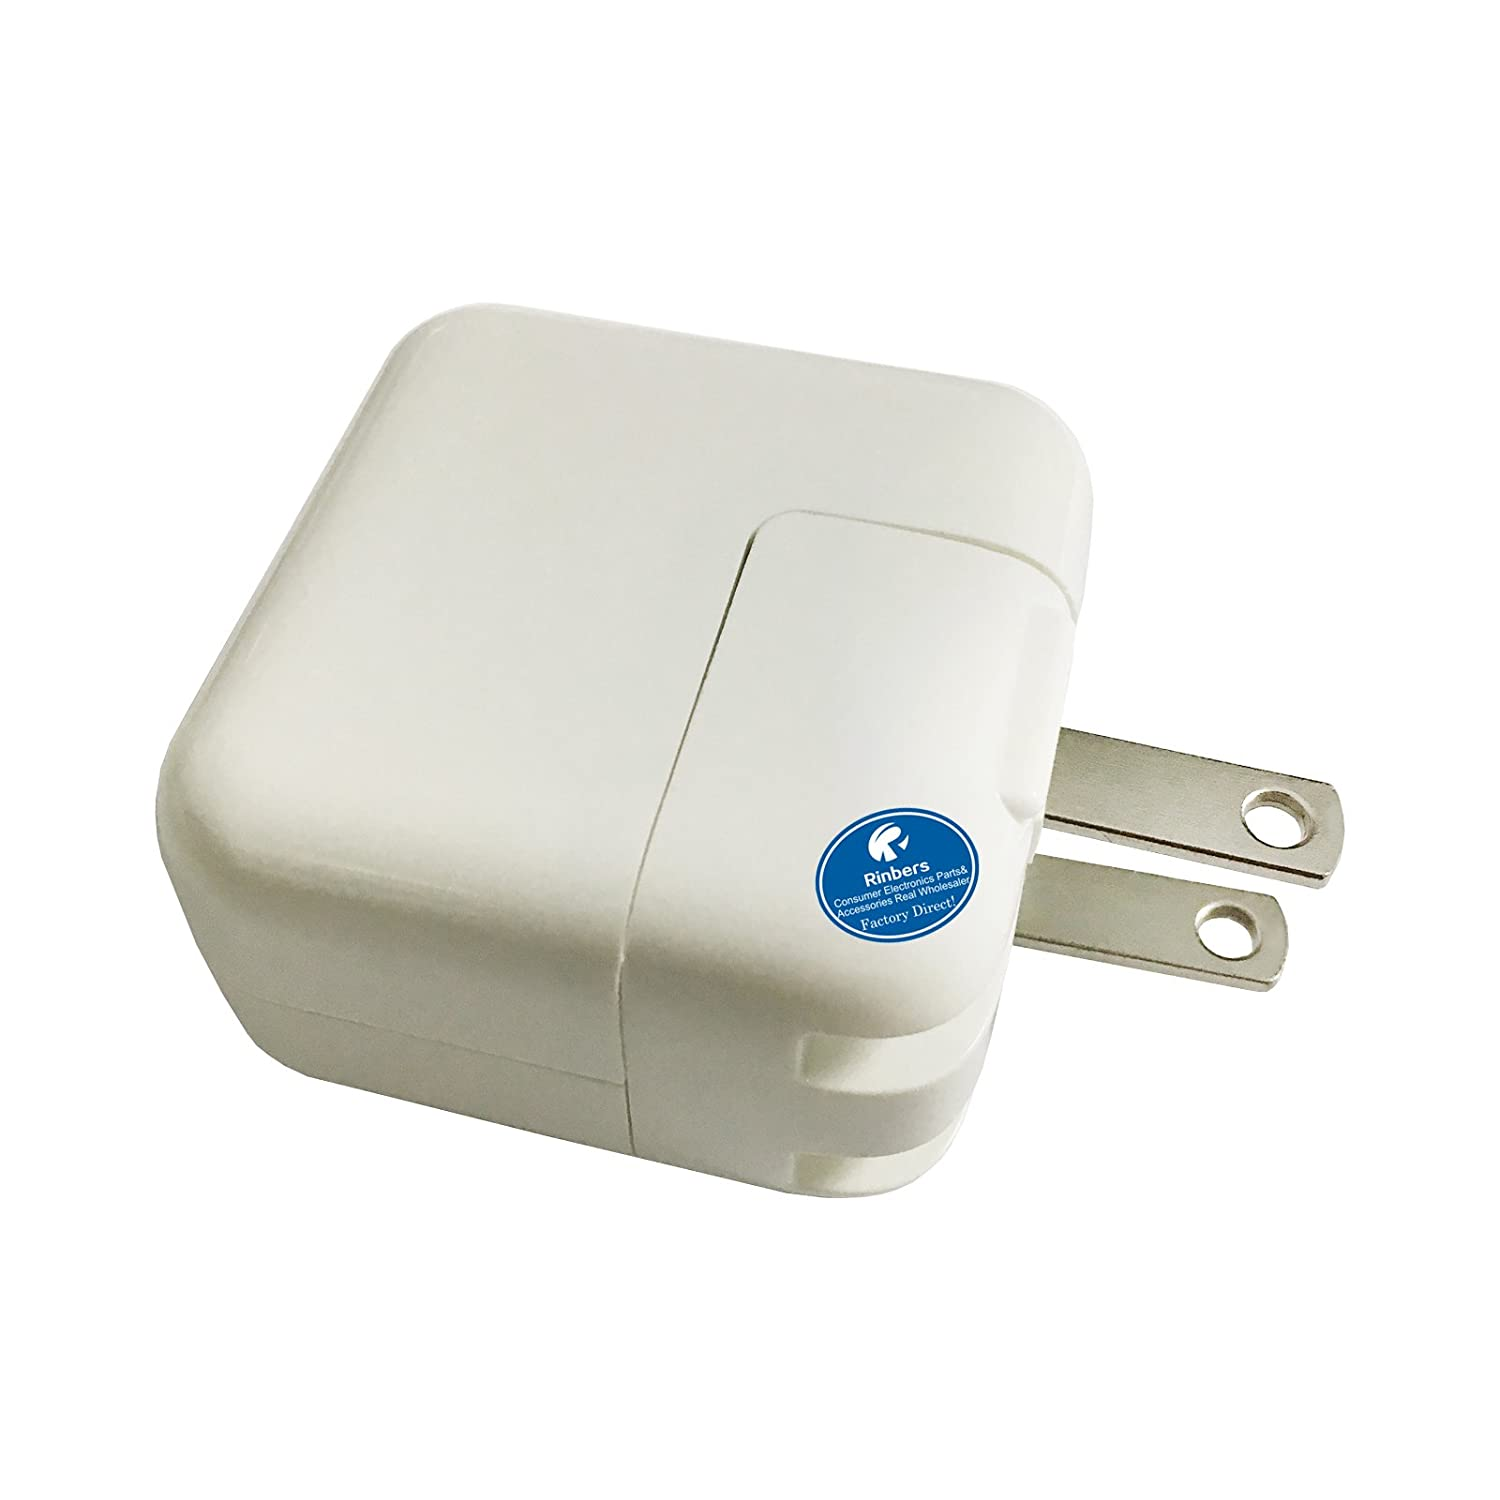 Rinbers Preminum 12W USB Power Adapter Wall Charger for iPad 1 2 3 4 Air Air 2 Mini 1/2/3/4, iPad Pro Rinbers Tech